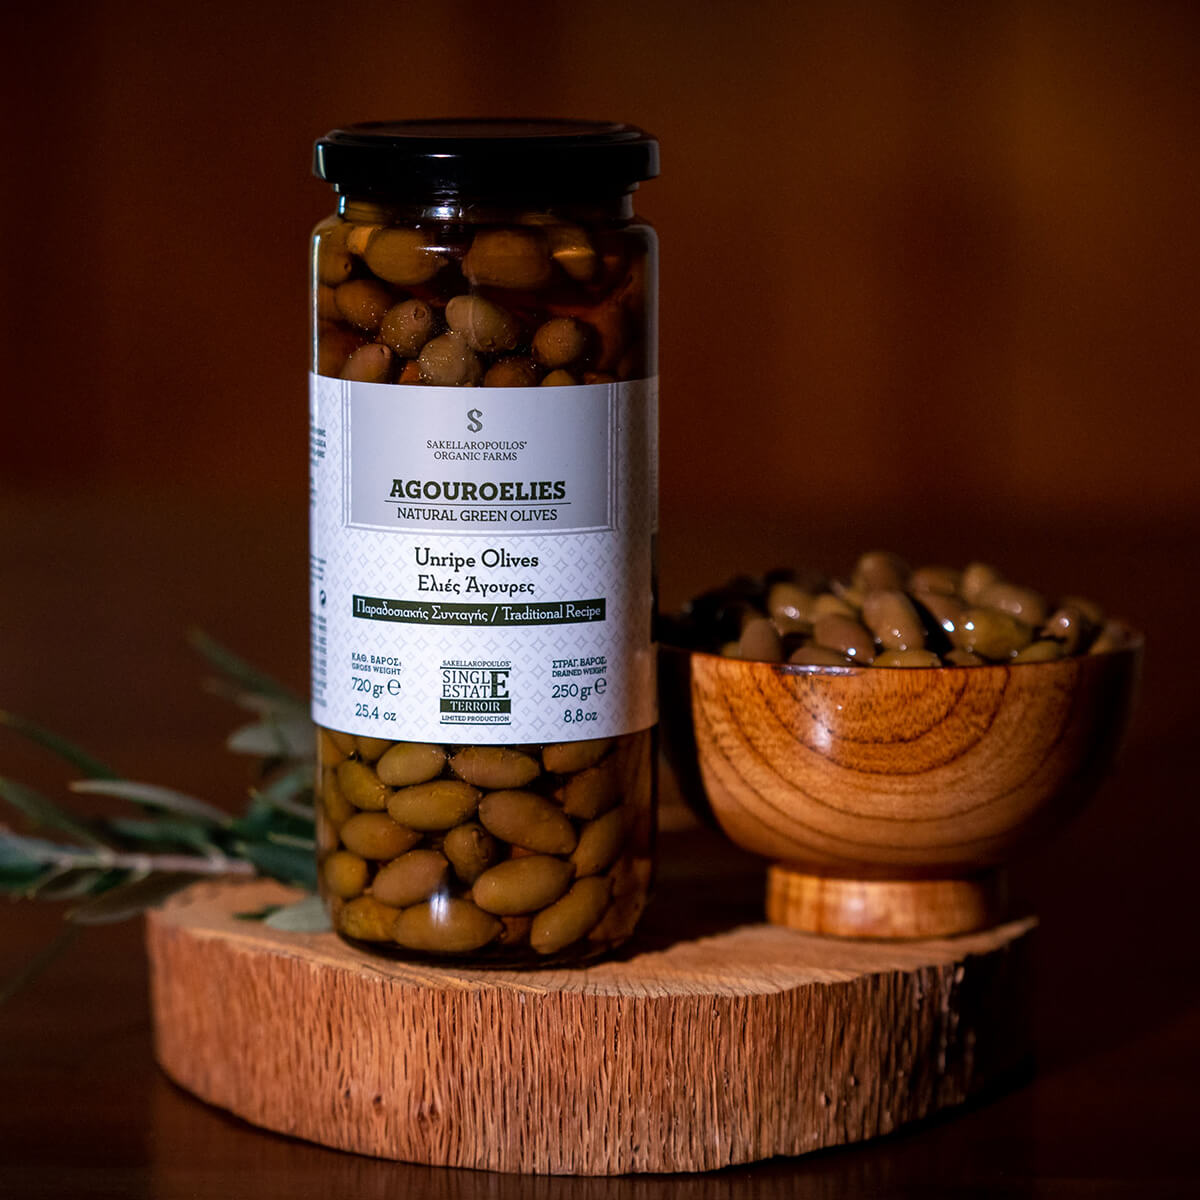 Organic Unripe Olives Kalamata greek top best agouroelies